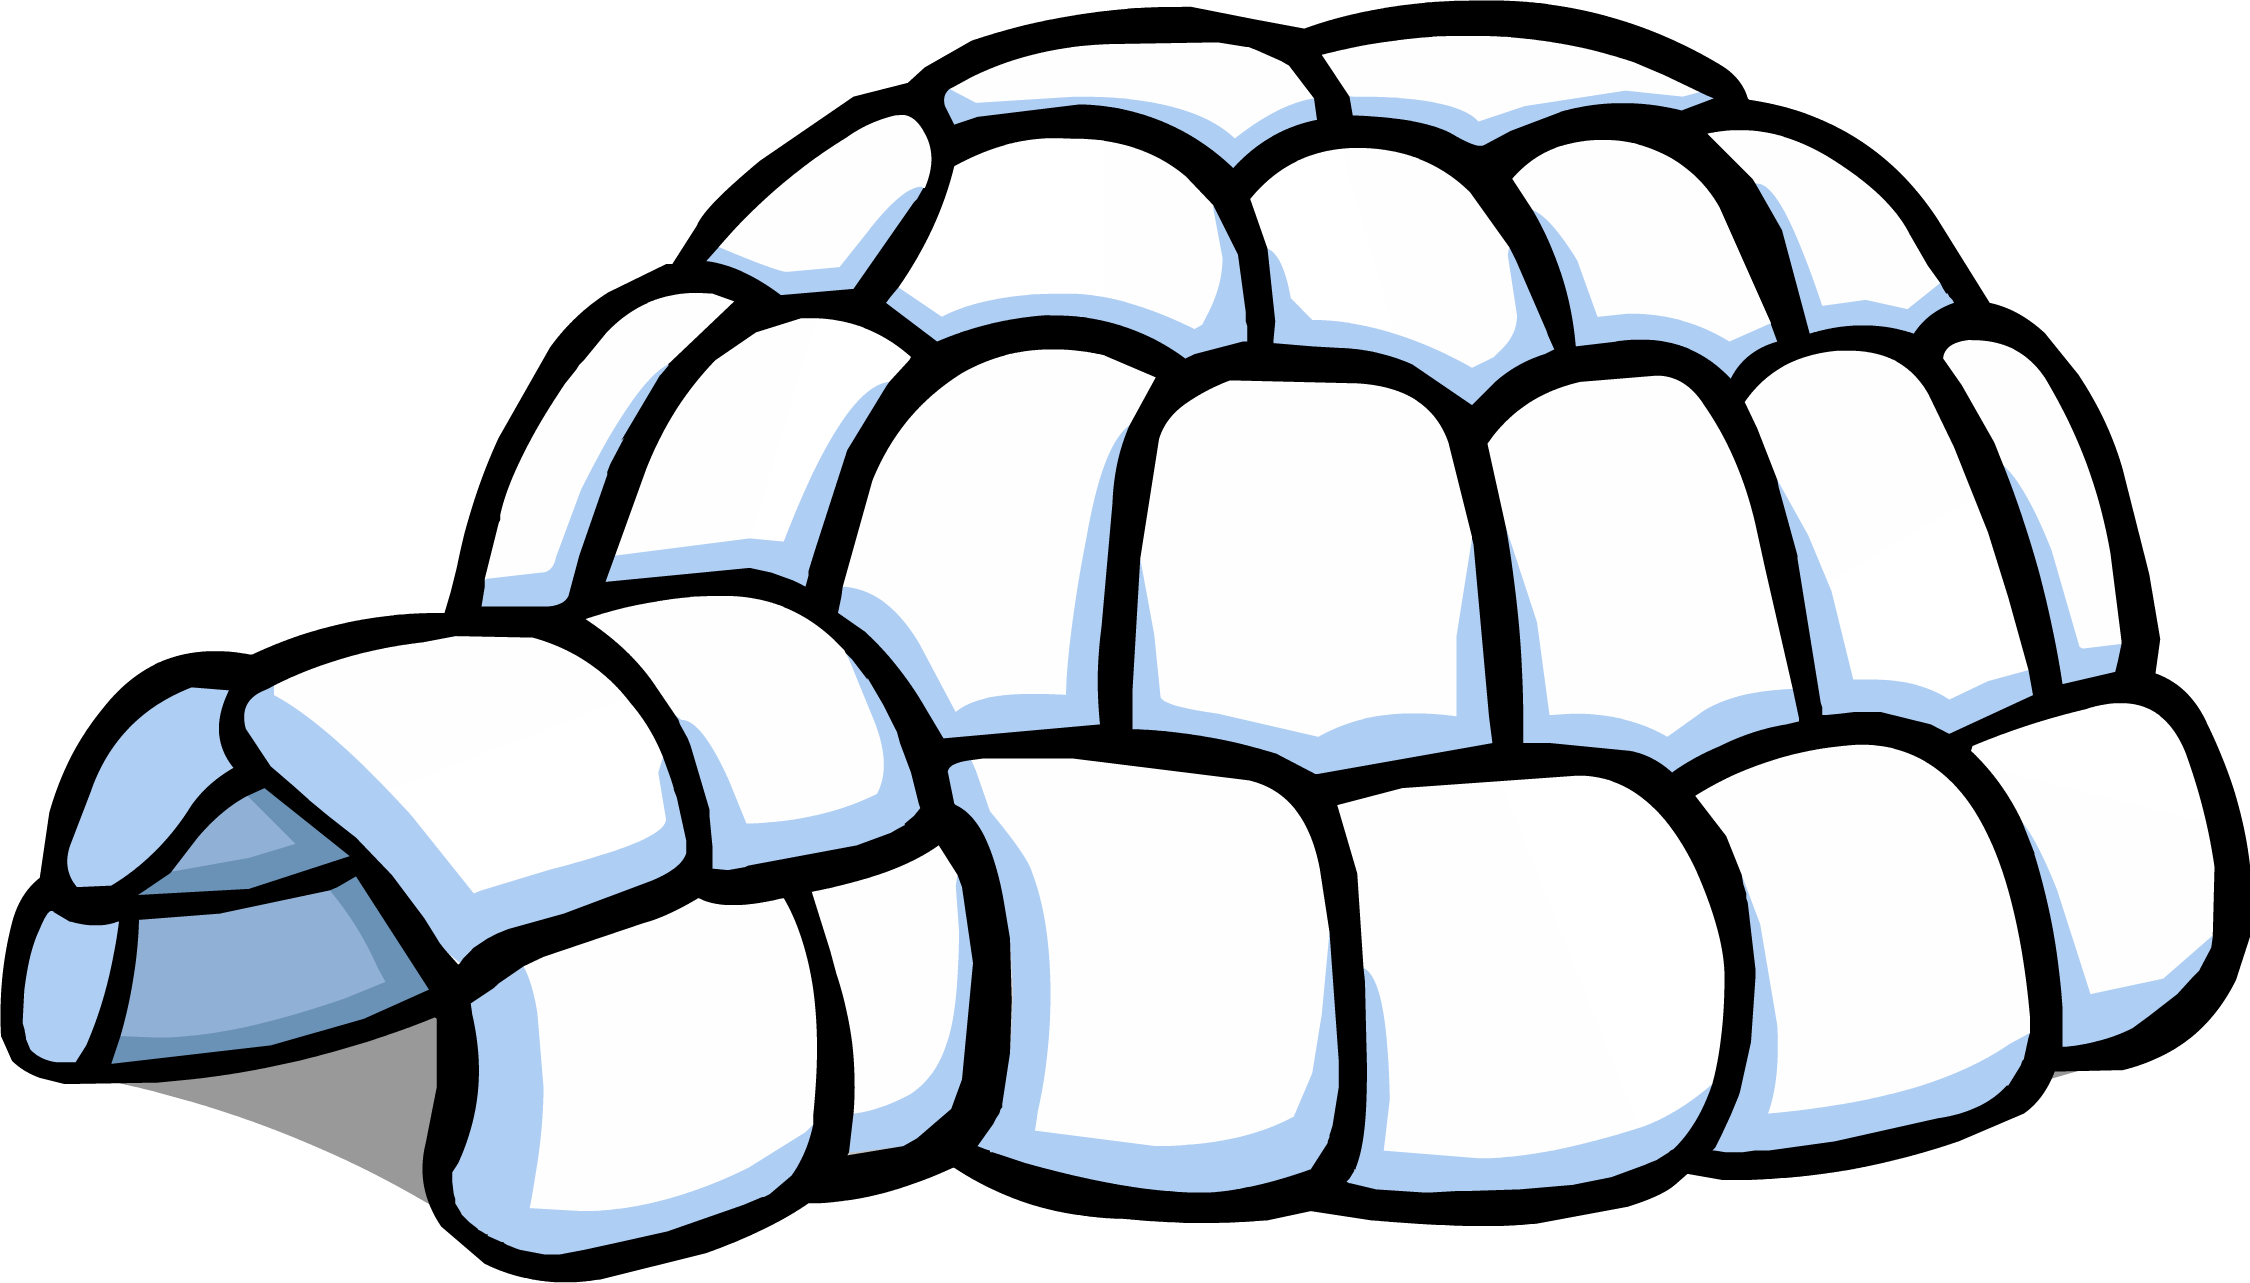 Igloo clipart polar climate. Graphic black and